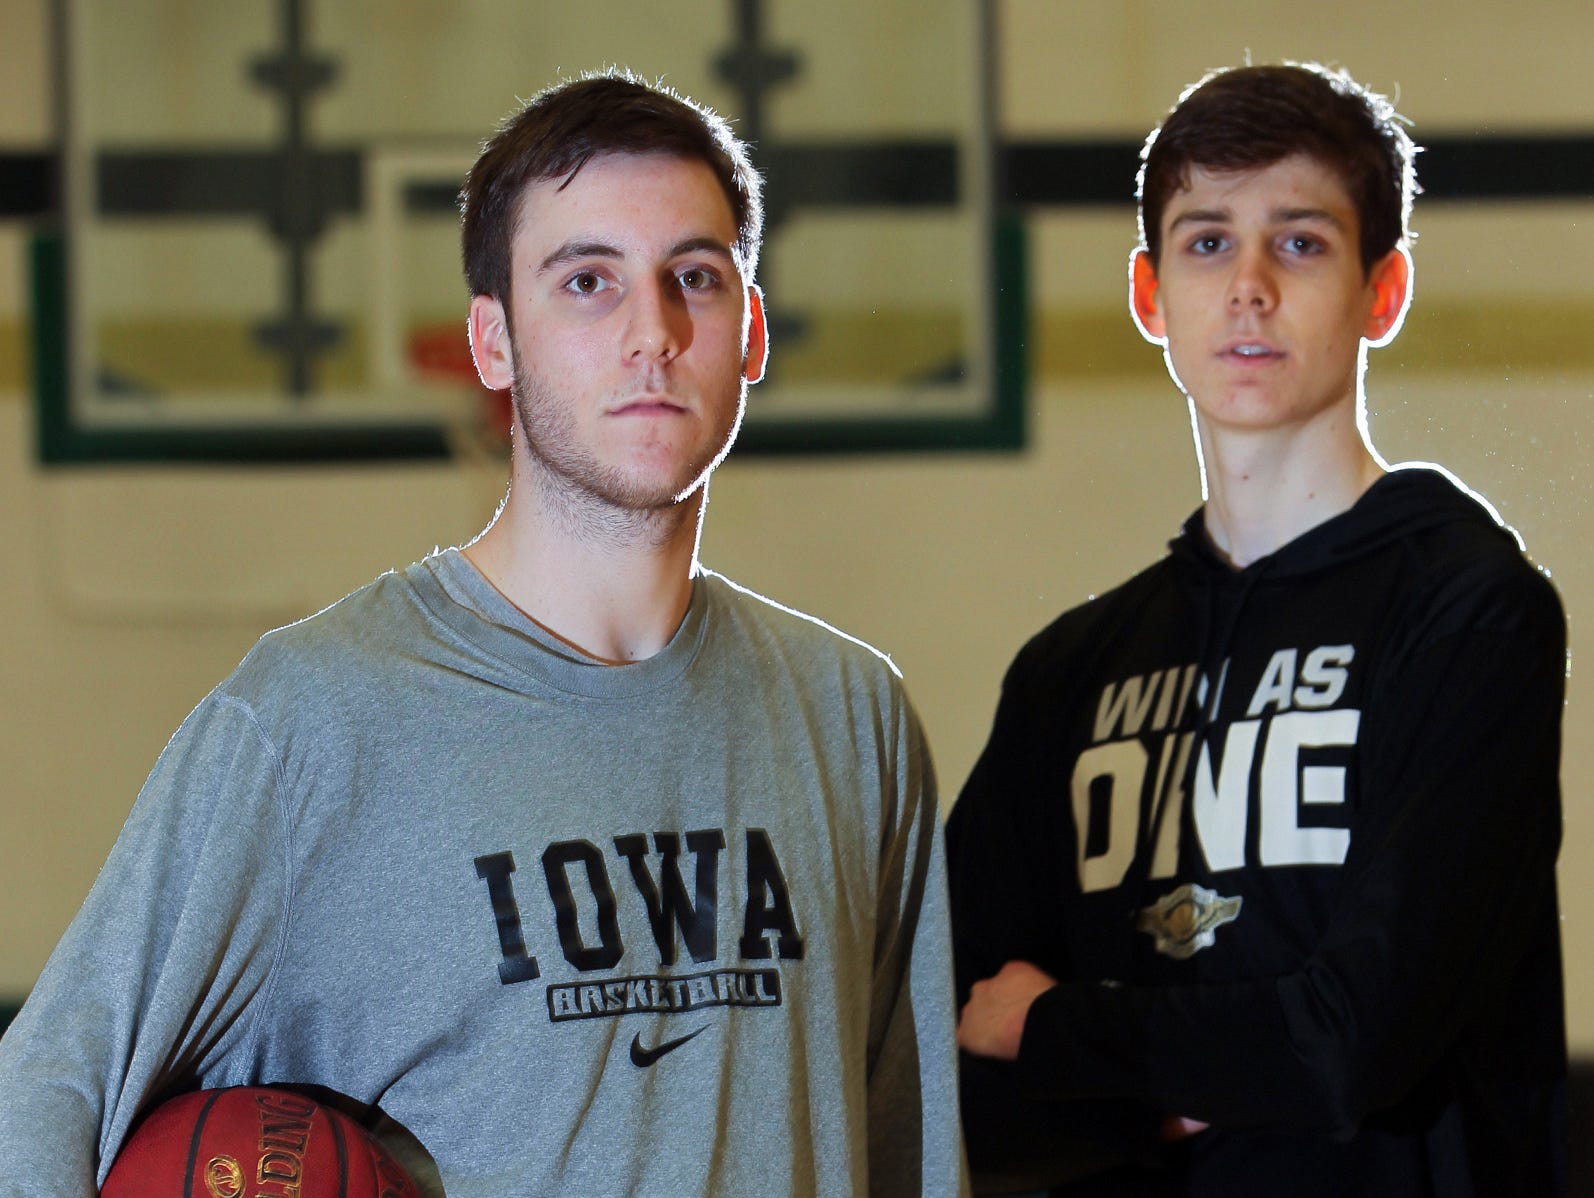 West High's Connor and Patrick McCaffery pose for a photo after practice on Monday, March 6, 2017.